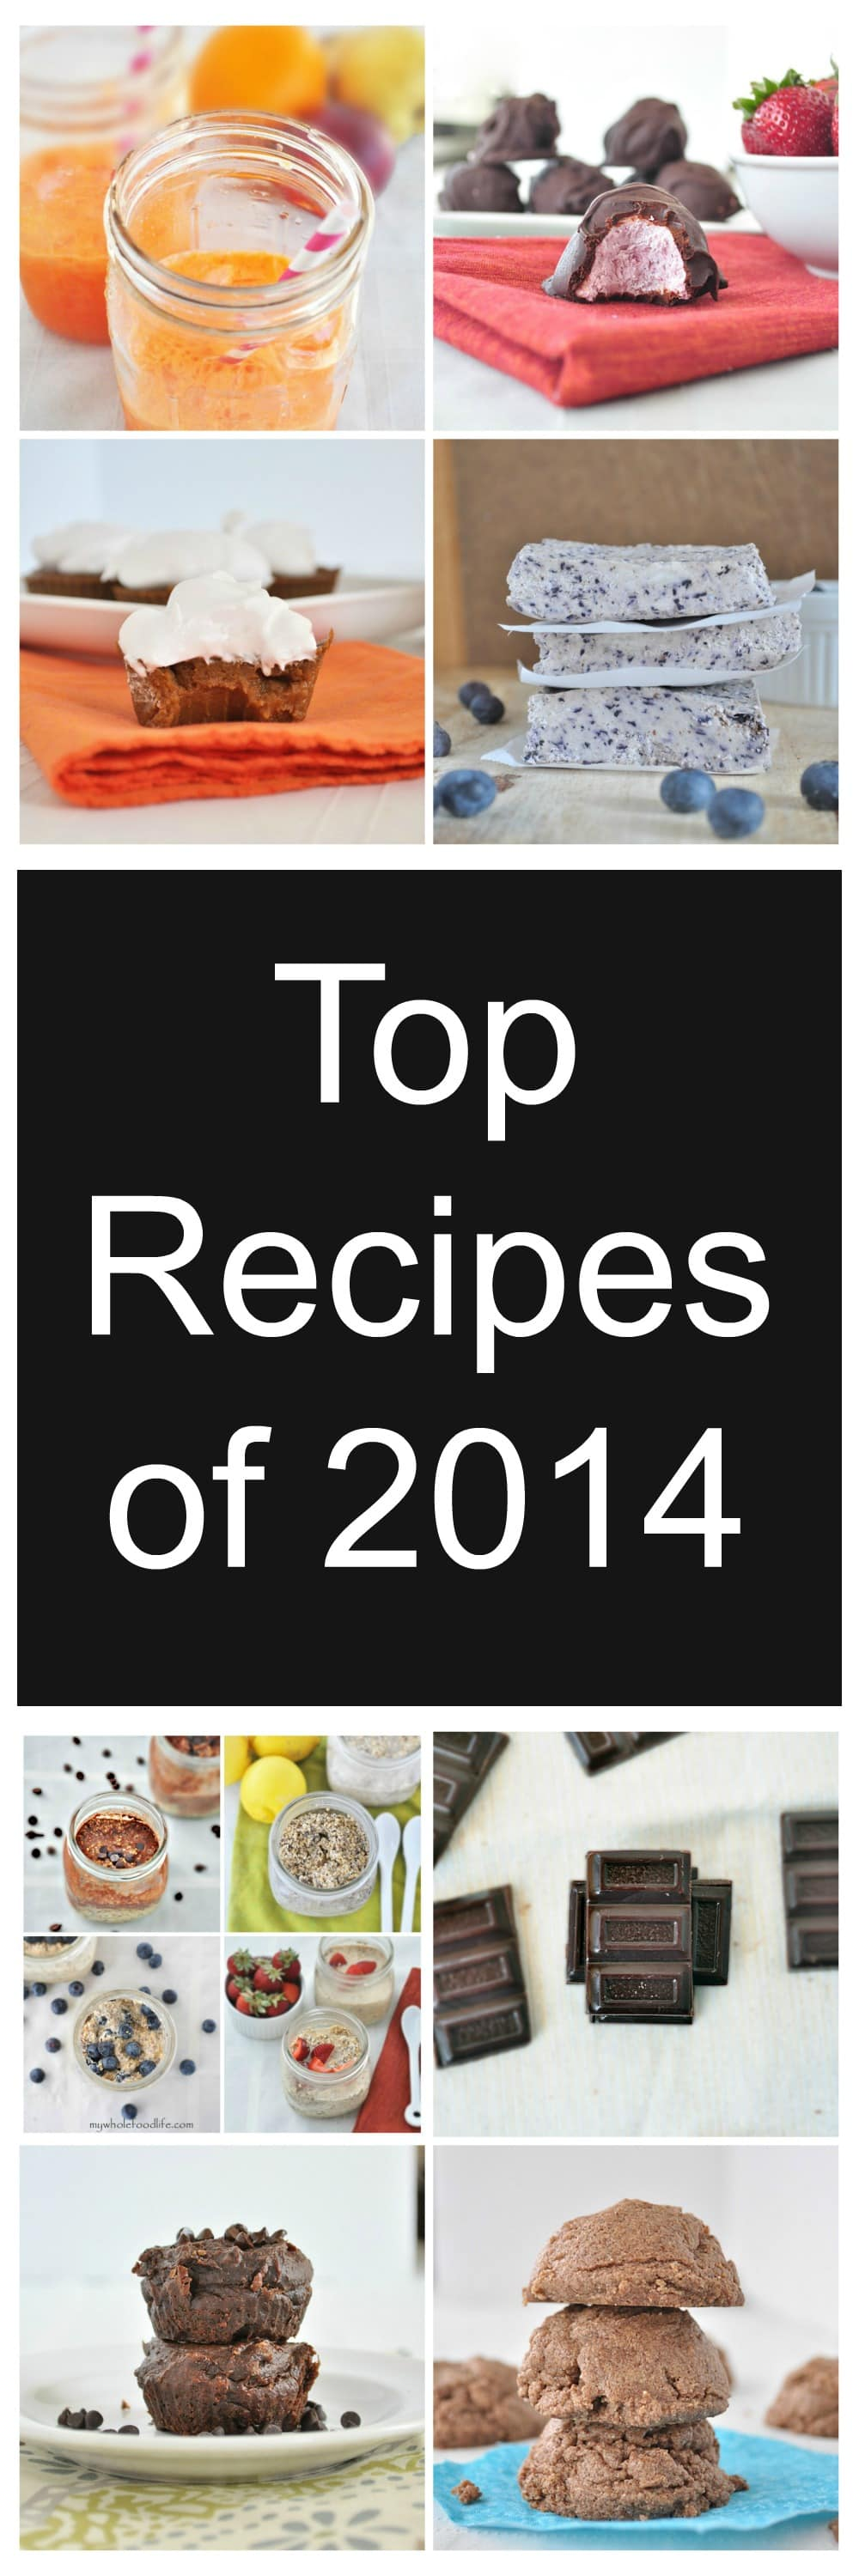 Top Recipes of 2014 Collage